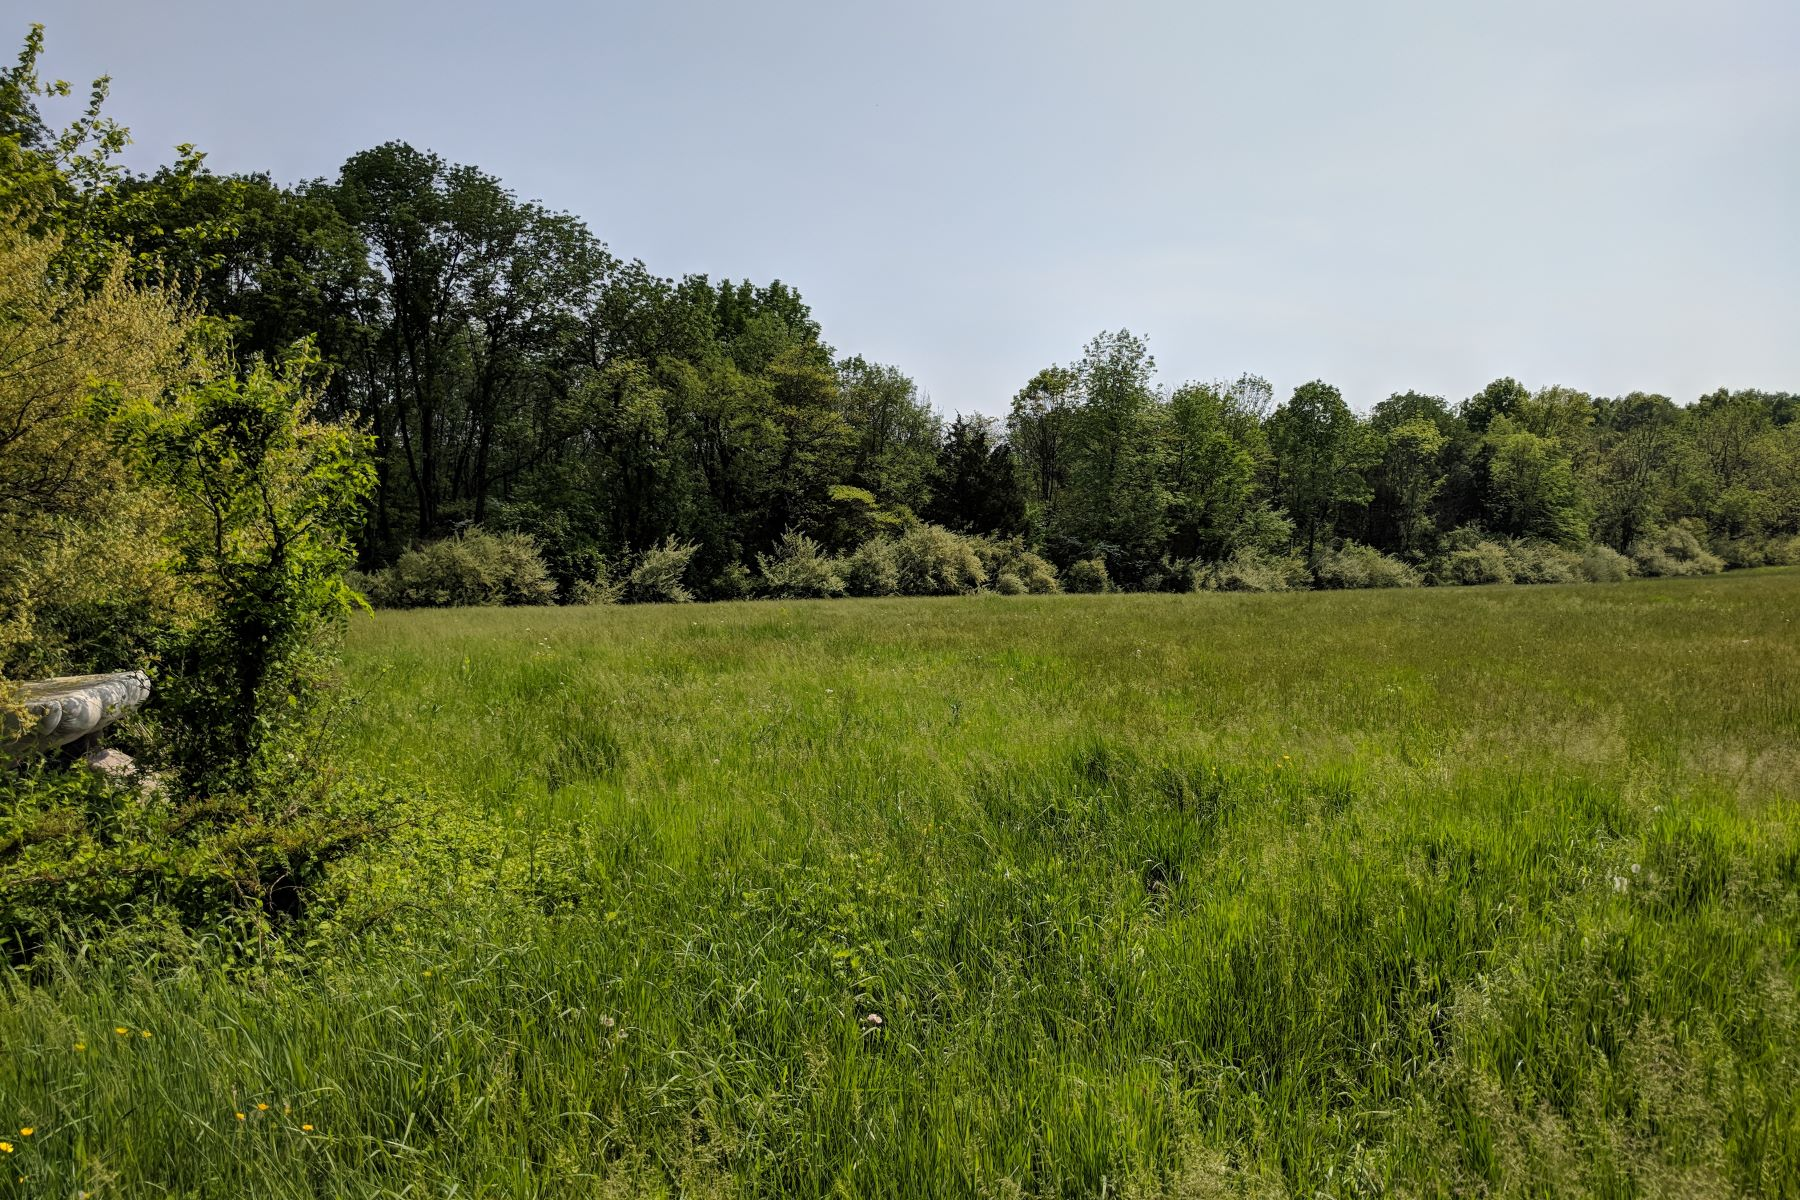 Remarkable 42 Acres in Southern West Amwell Township 21 Wilson Road, Lambertville, Nueva Jersey 08530 Estados Unidos